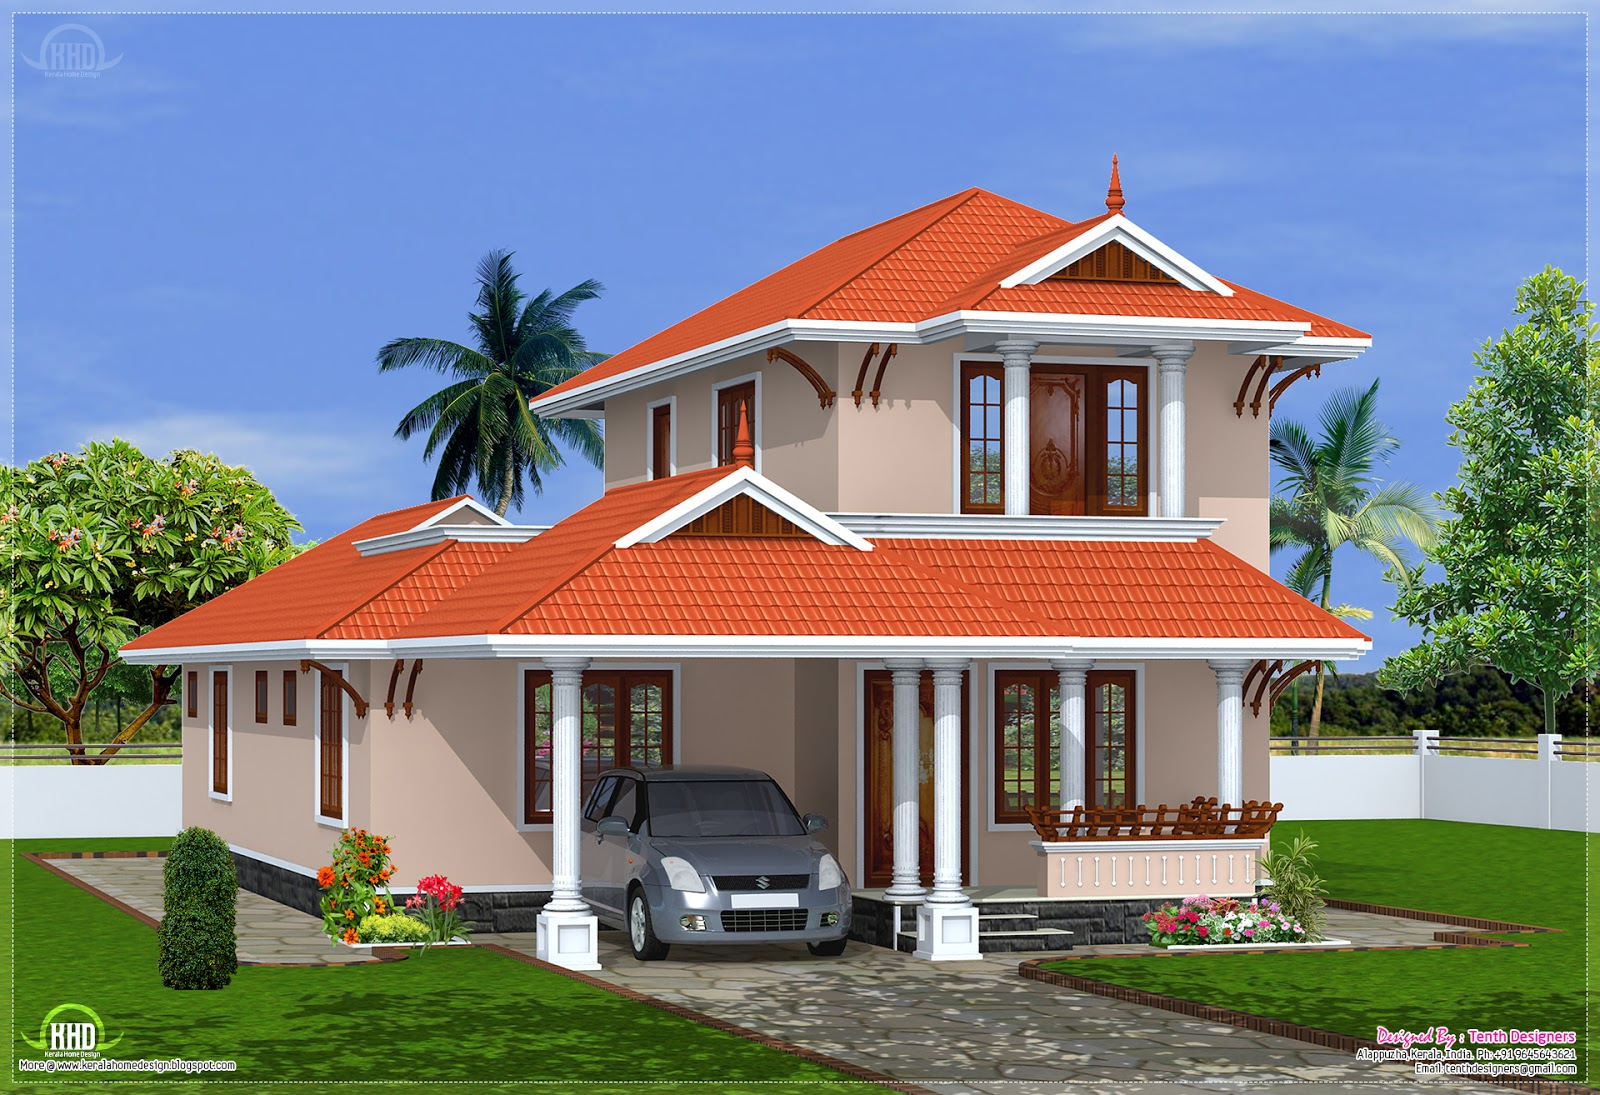 2000 kerala model villa design house design plans for Kerala style villa plans